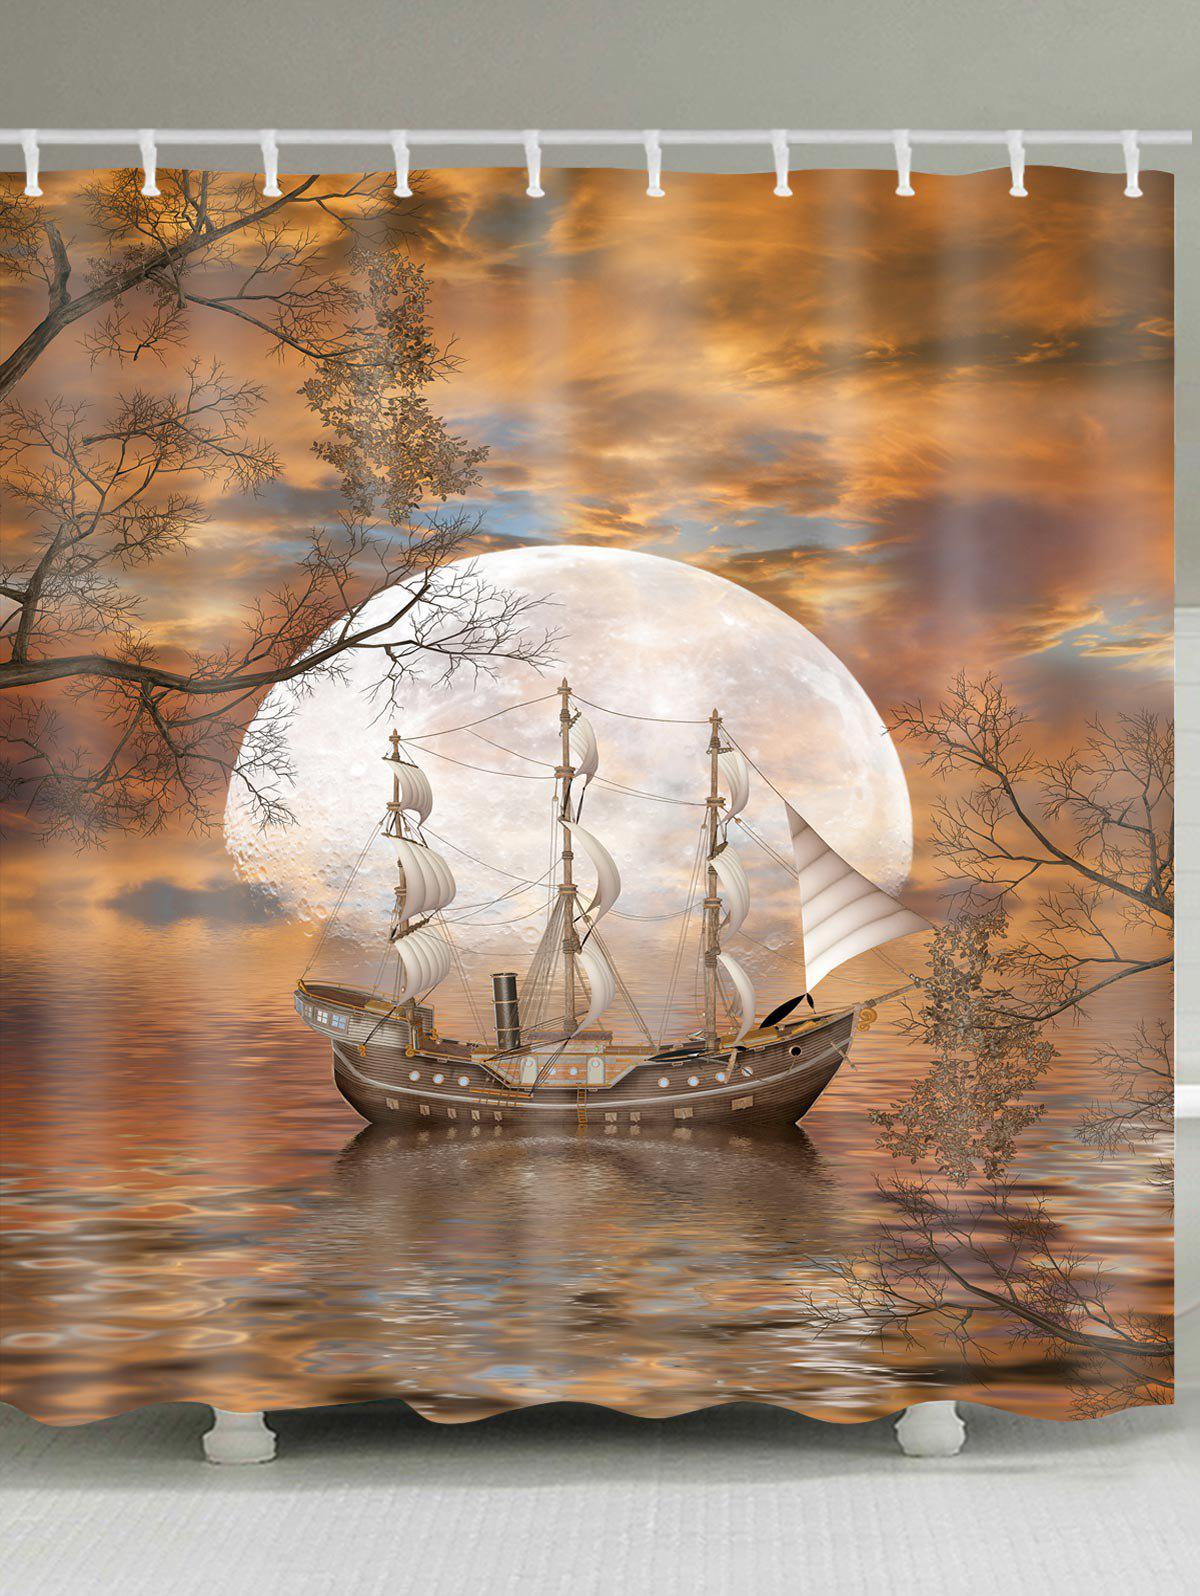 Affordable Moon Ship Print Waterproof Bathroom Shower Curtain